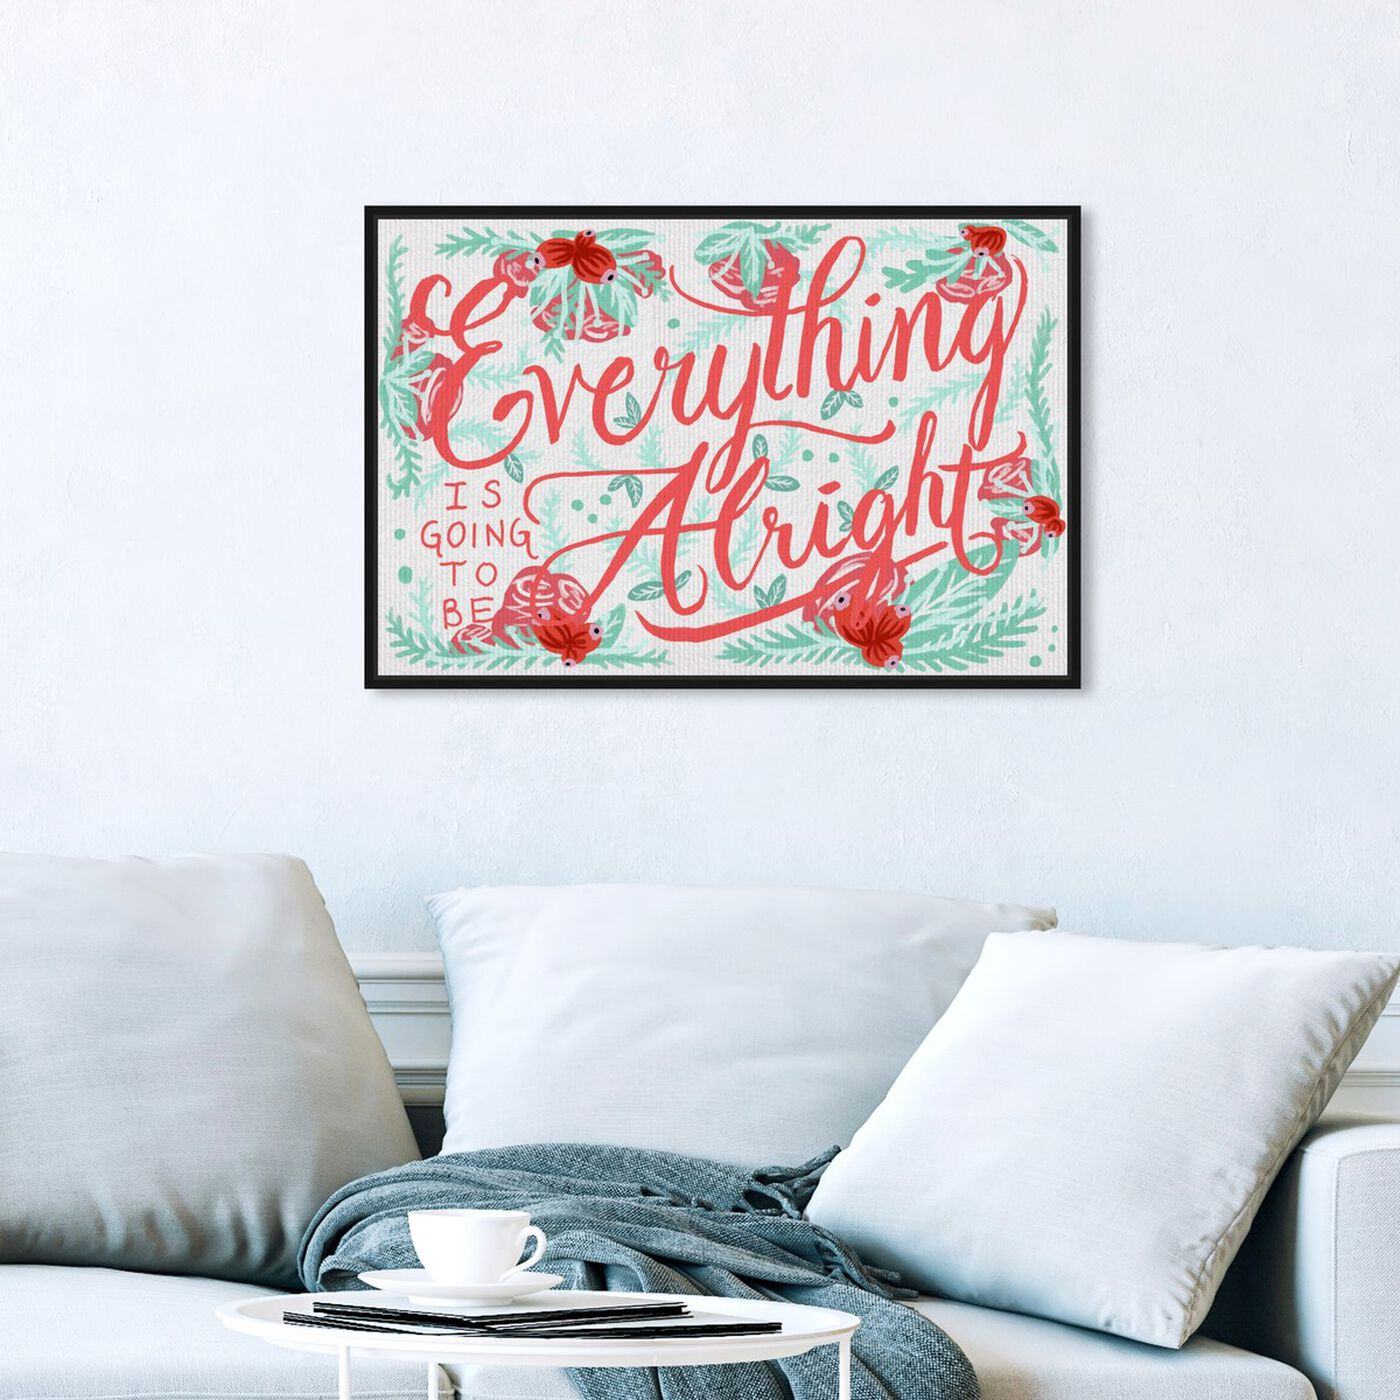 Hanging view of Alright Minty I featuring typography and quotes and inspirational quotes and sayings art.